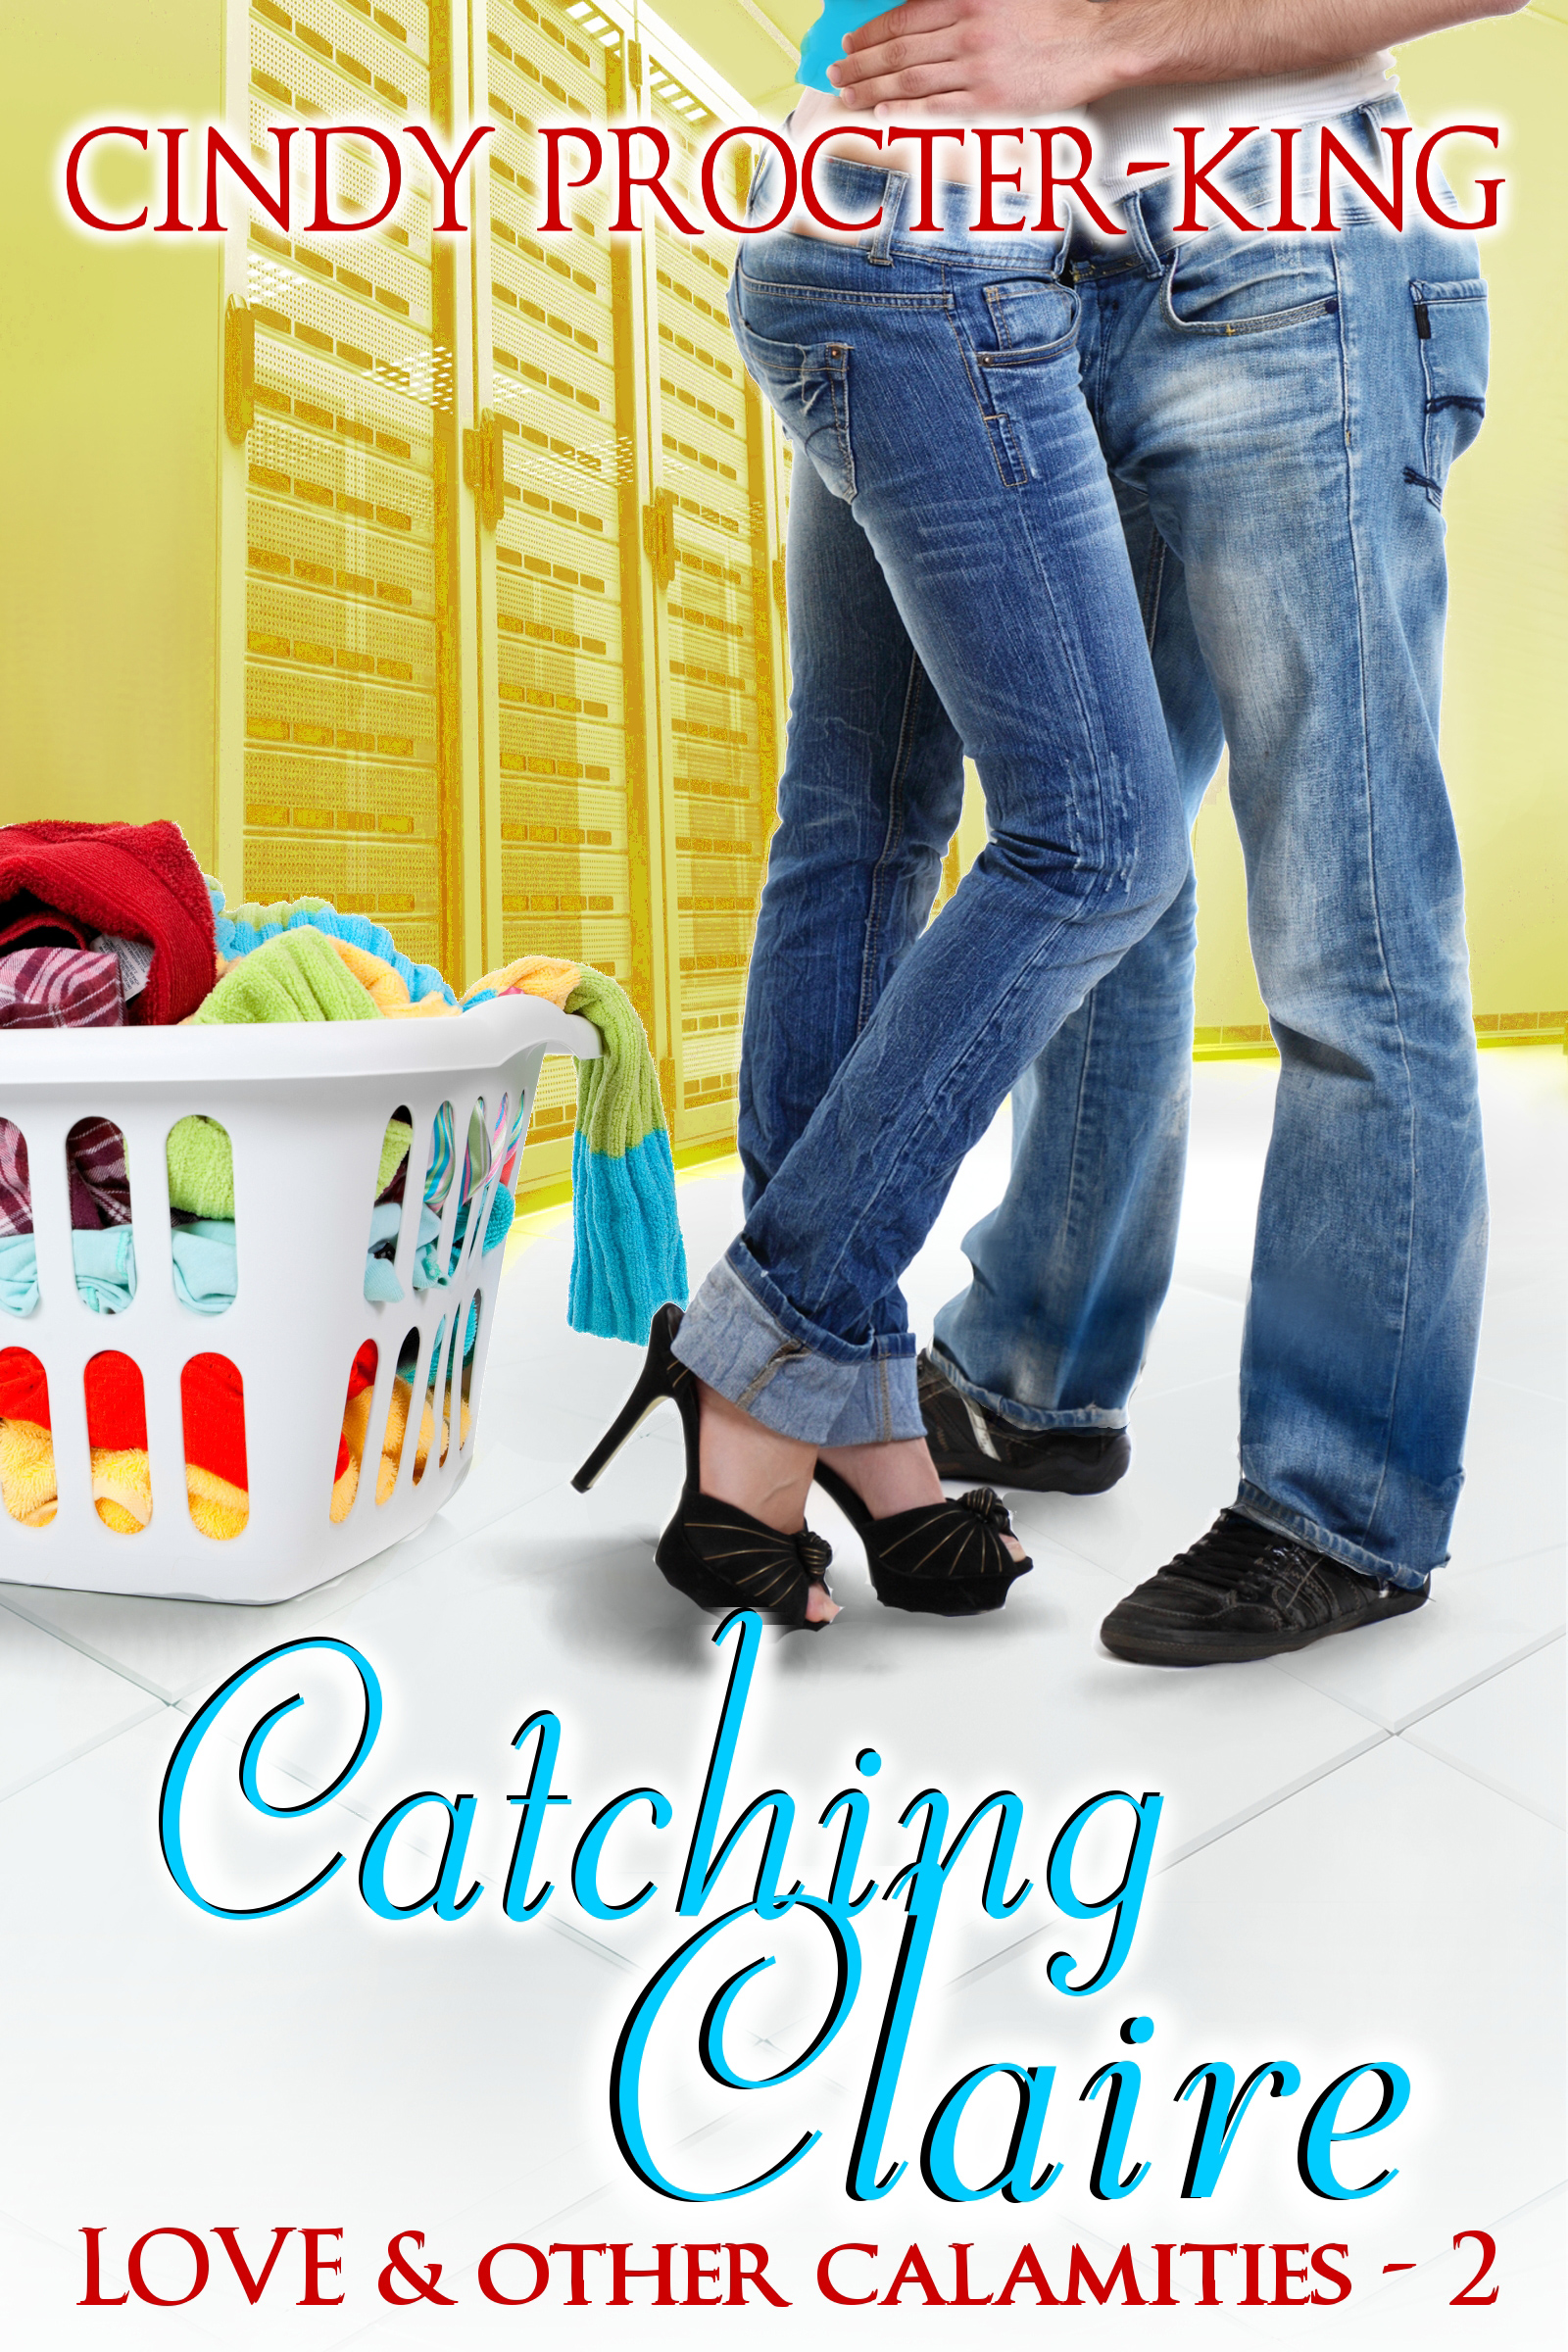 Cindy Procter-King - Catching Claire (Romantic Comedy Short Story)